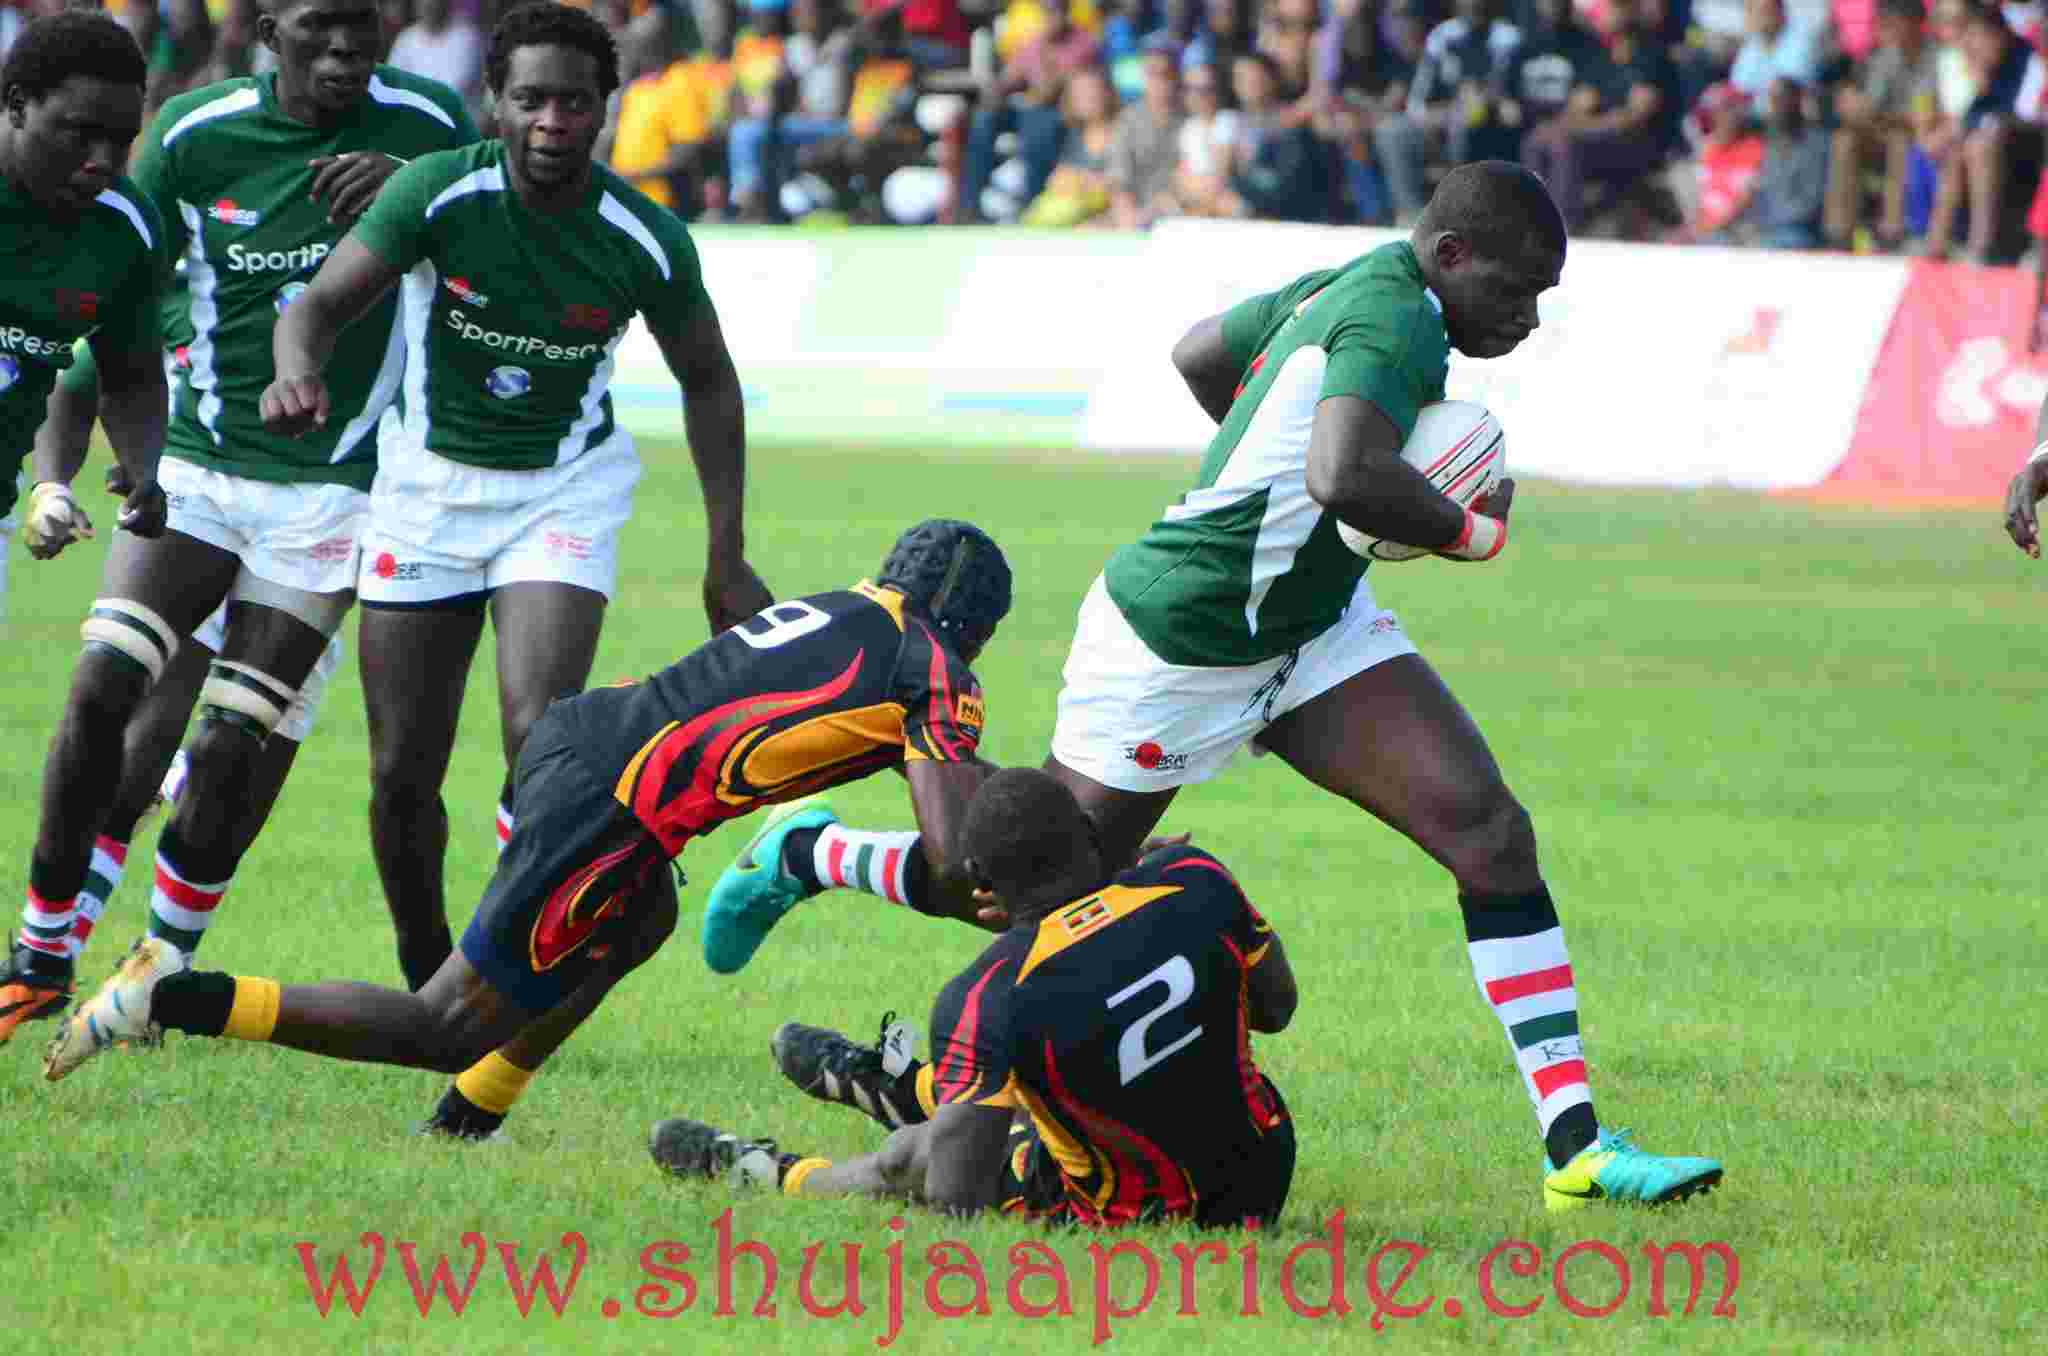 Photos : Kenya vs Uganda | Tries, Penalties and hits